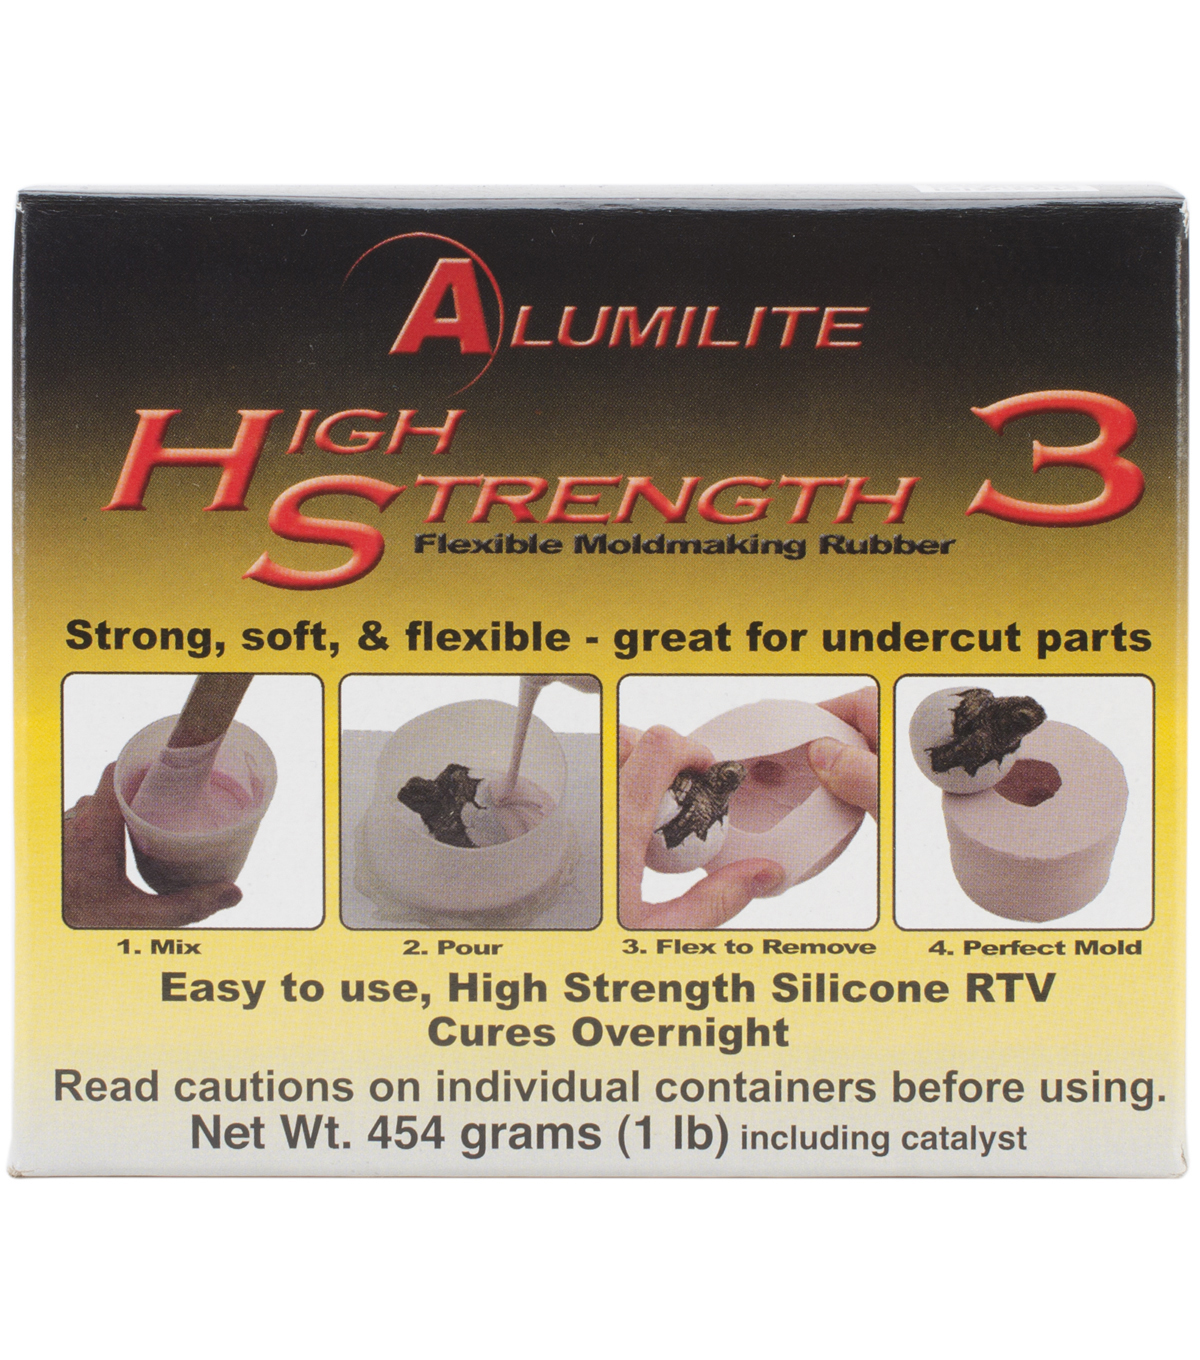 Alumilite 1 lb High Strength 3 Liquid Mold Making Rubber-Pink